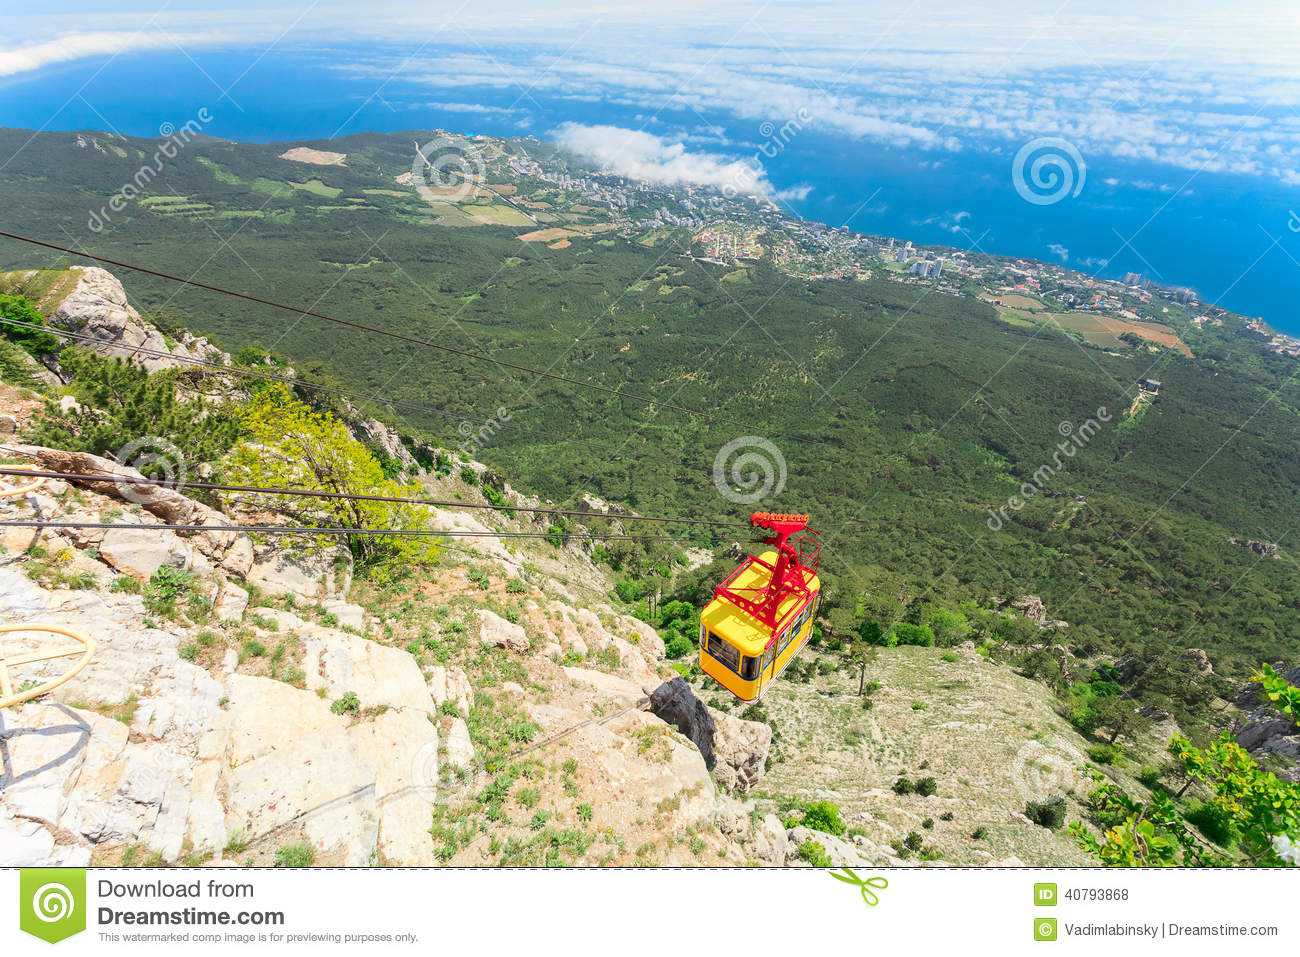 Download MISHOR, CRIMEA, UKRAINE - MAY 12: People Travel By Rope Way Cab On Top Of Ai-Petri Mountain On May 12, 2013 In Mishor, Ukraine/Rus Stock Photo - Image of nature, mountain: 40793868